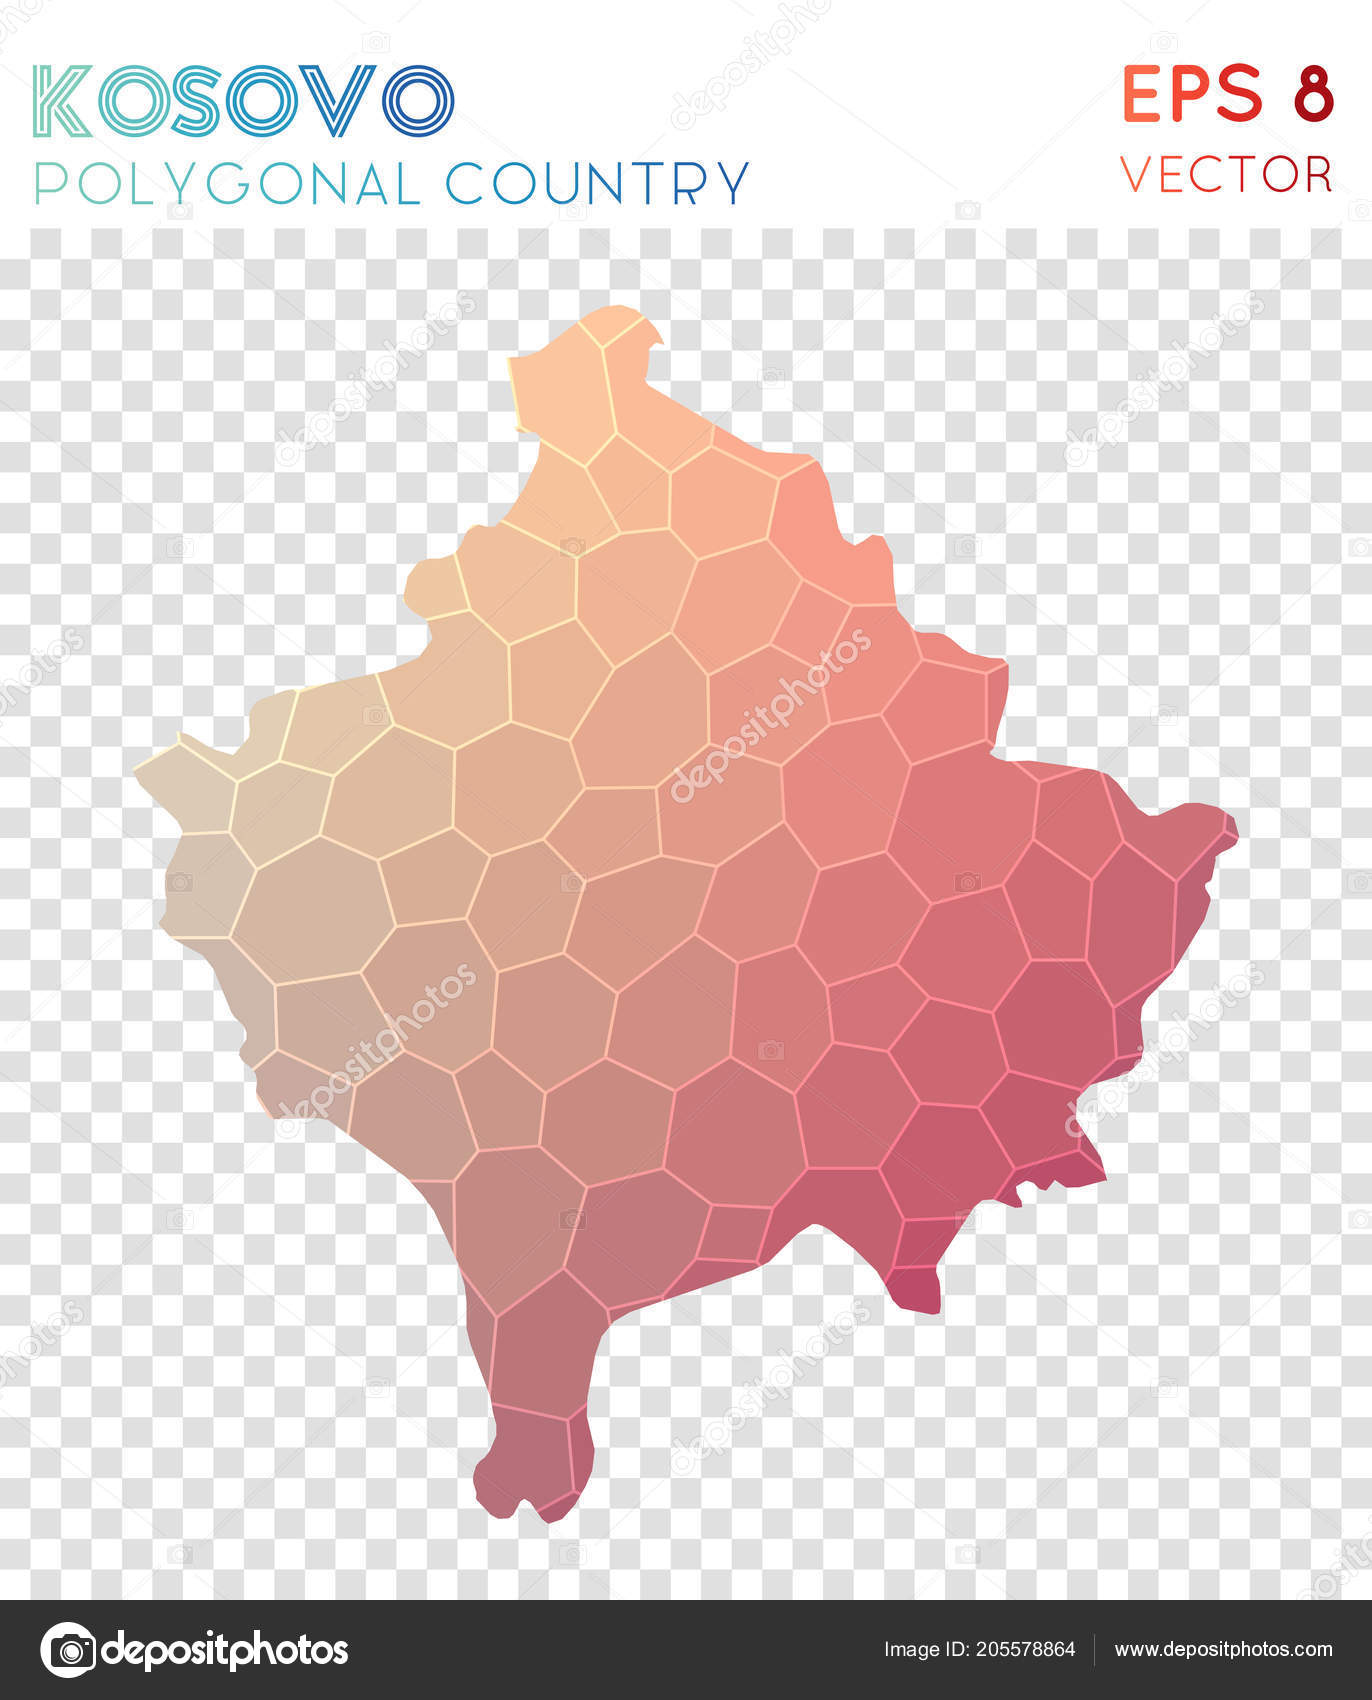 Uberlegen Kosovo Polygonal Map, Mosaic Style Country. Perfect Low Poly Style, Modern  Design. Kosovo Polygonal Map For Infographics Or Presentation. U2014 Vetor De  ...